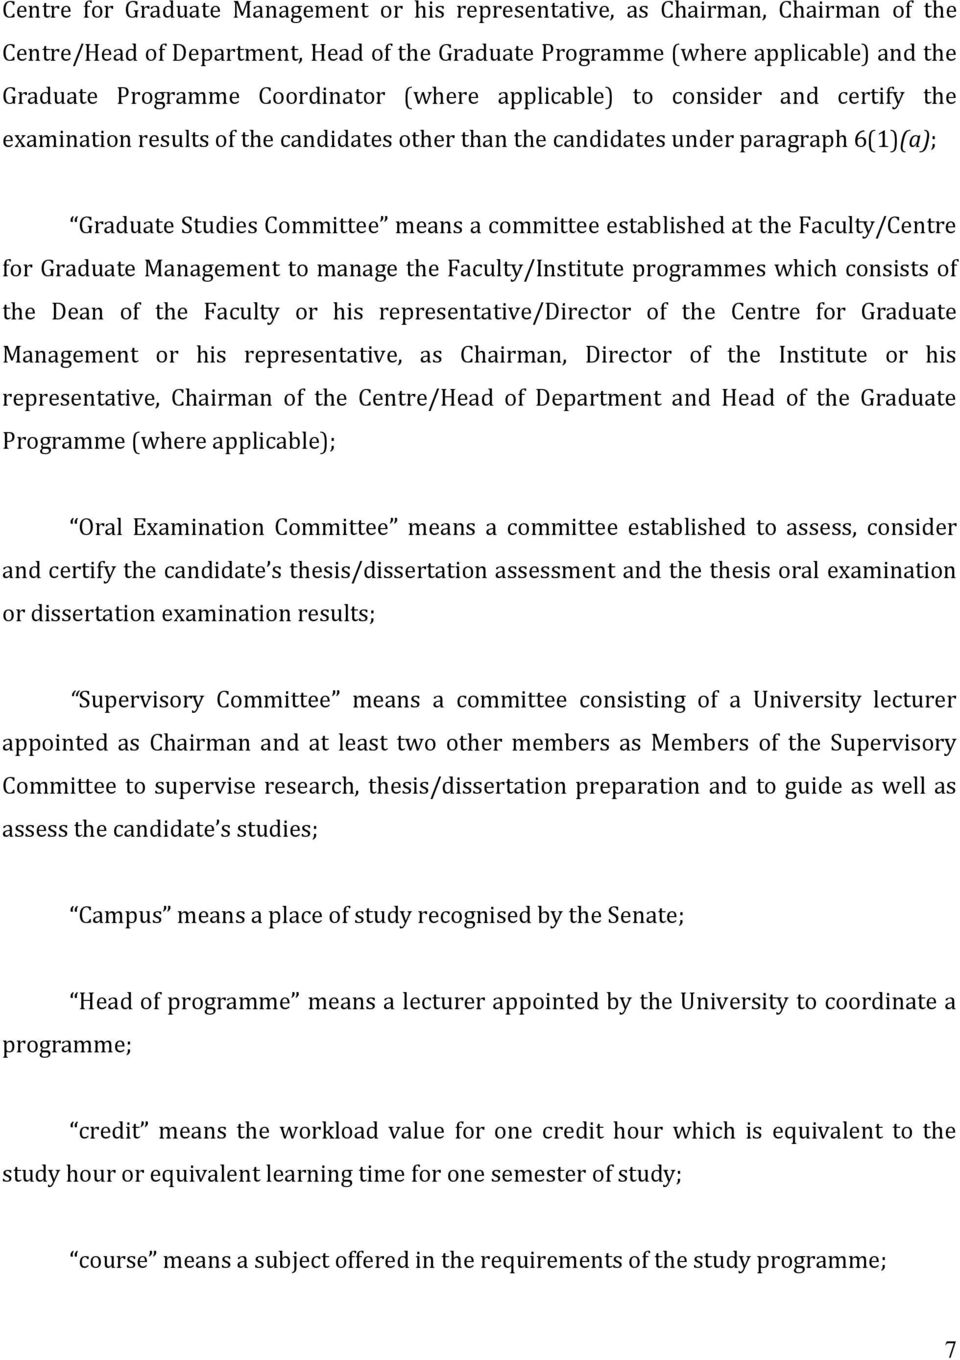 Faculty/Centre for Graduate Management to manage the Faculty/Institute programmes which consists of the Dean of the Faculty or his representative/director of the Centre for Graduate Management or his